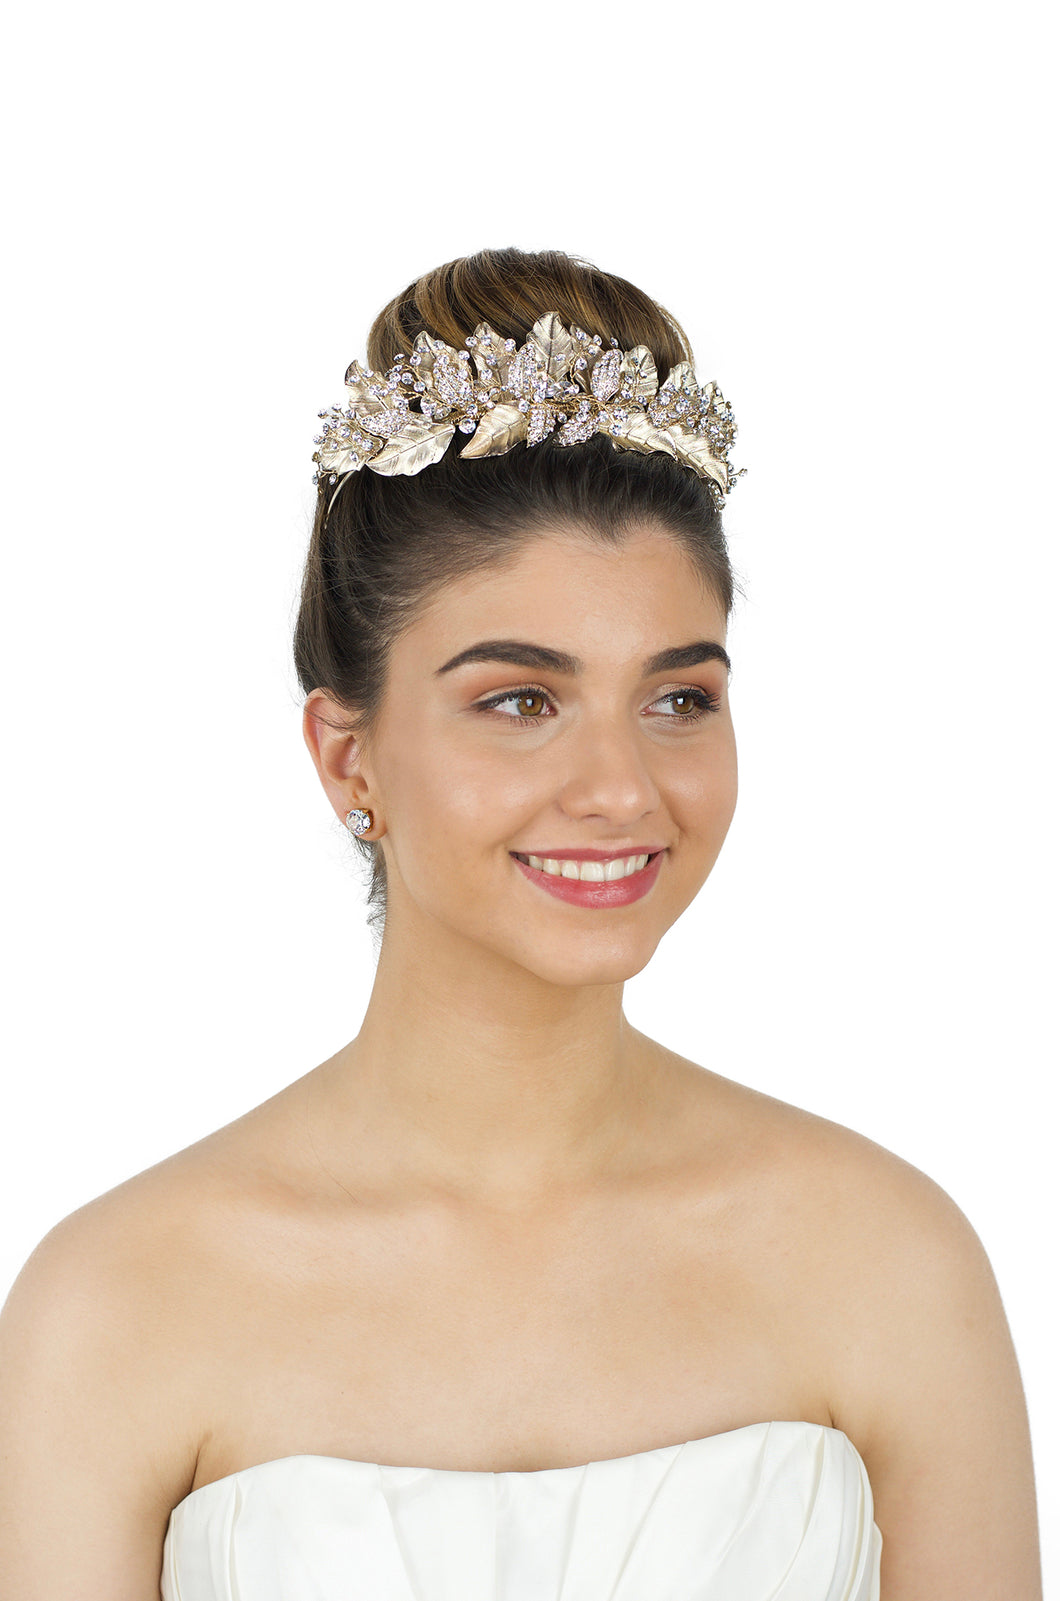 Model wearing a pale gold crown around her up style hairdo with a white background.